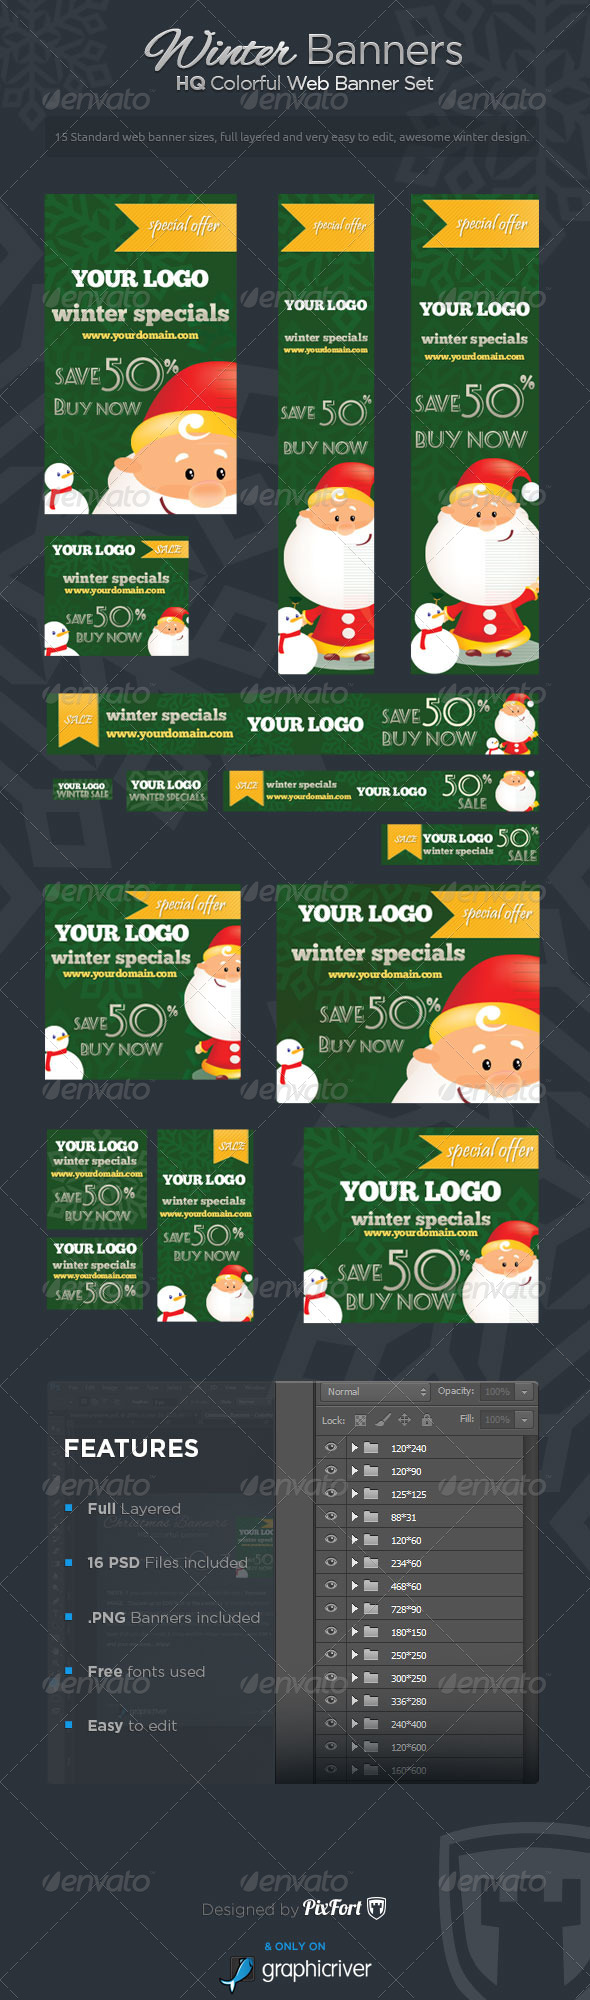 Winter Banners - Winter Specials Banner Set - Banners & Ads Web Elements